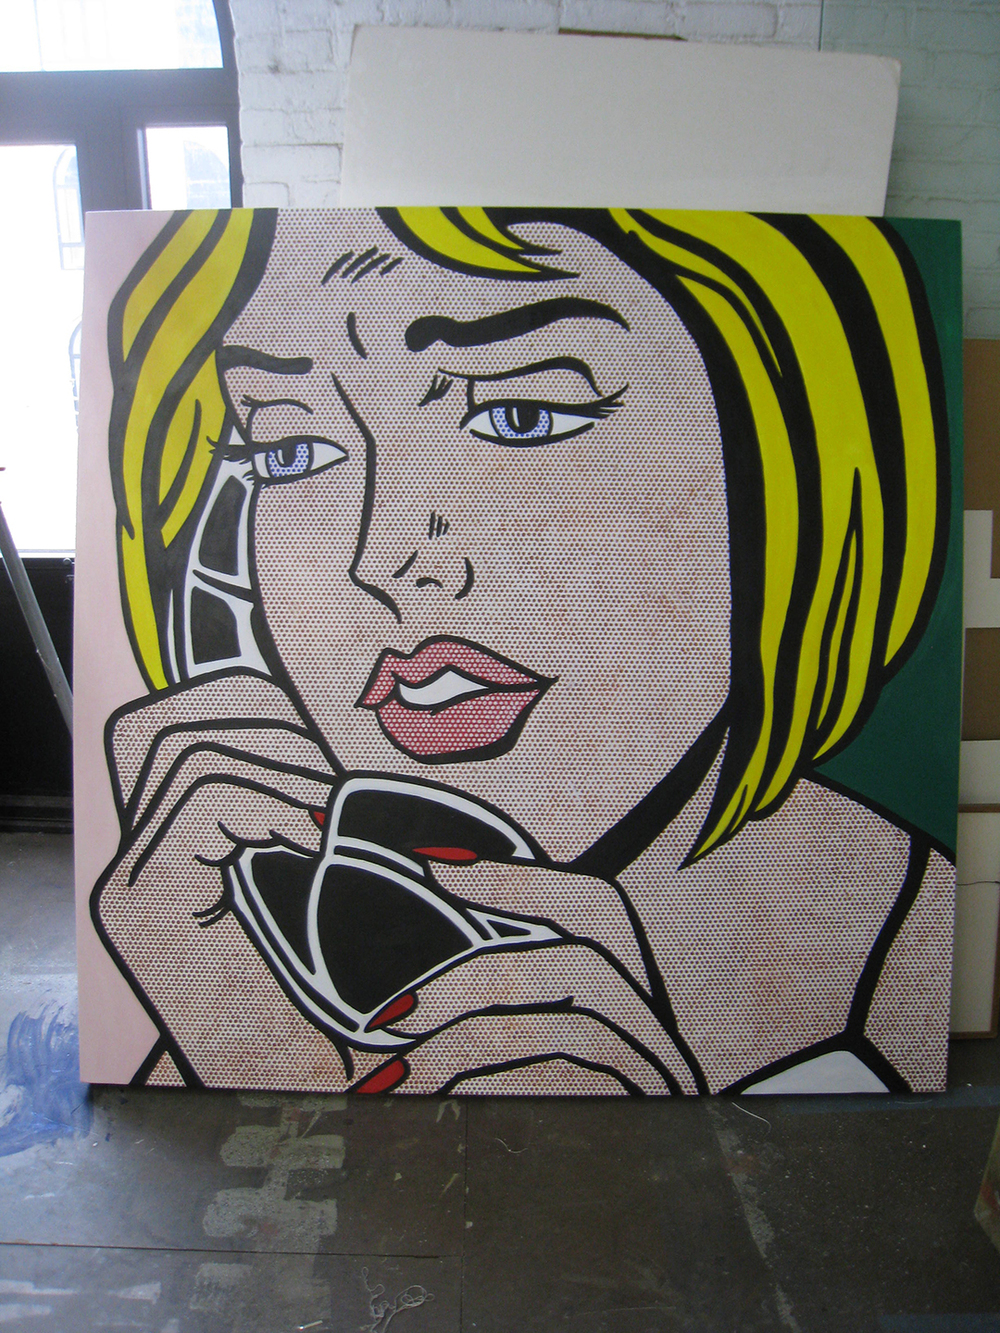 Lichtenstein: First Wives Club